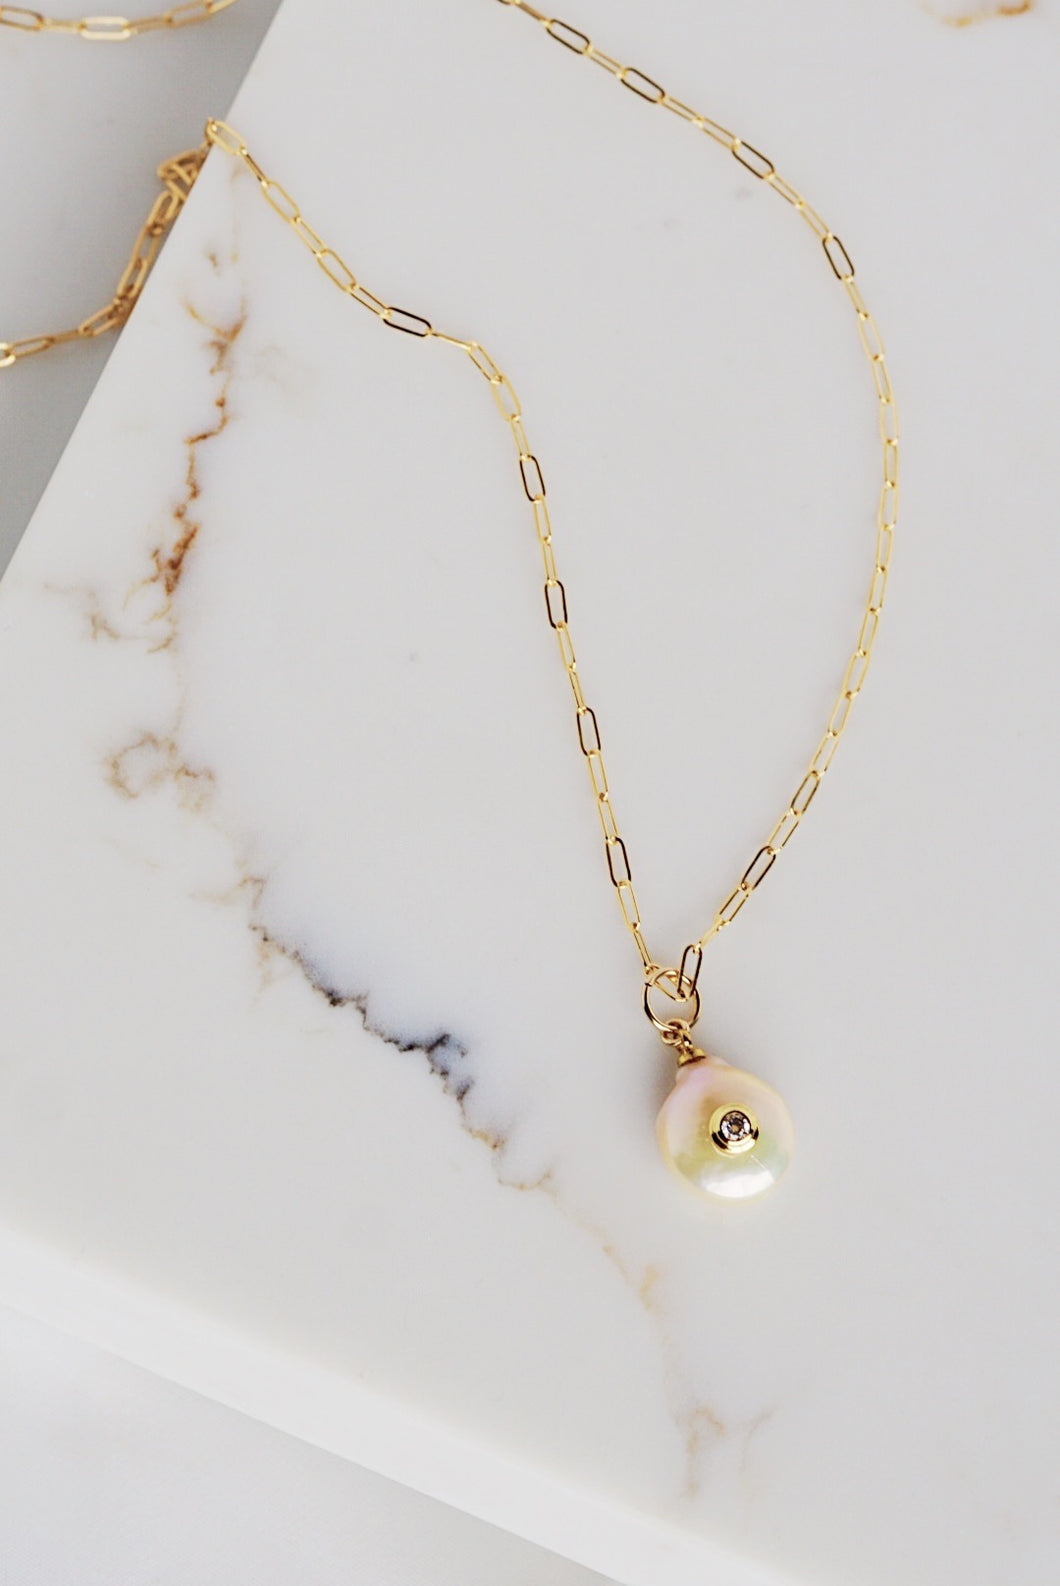 PORTIA Link Necklace with Pearl Pendant Gold Filled